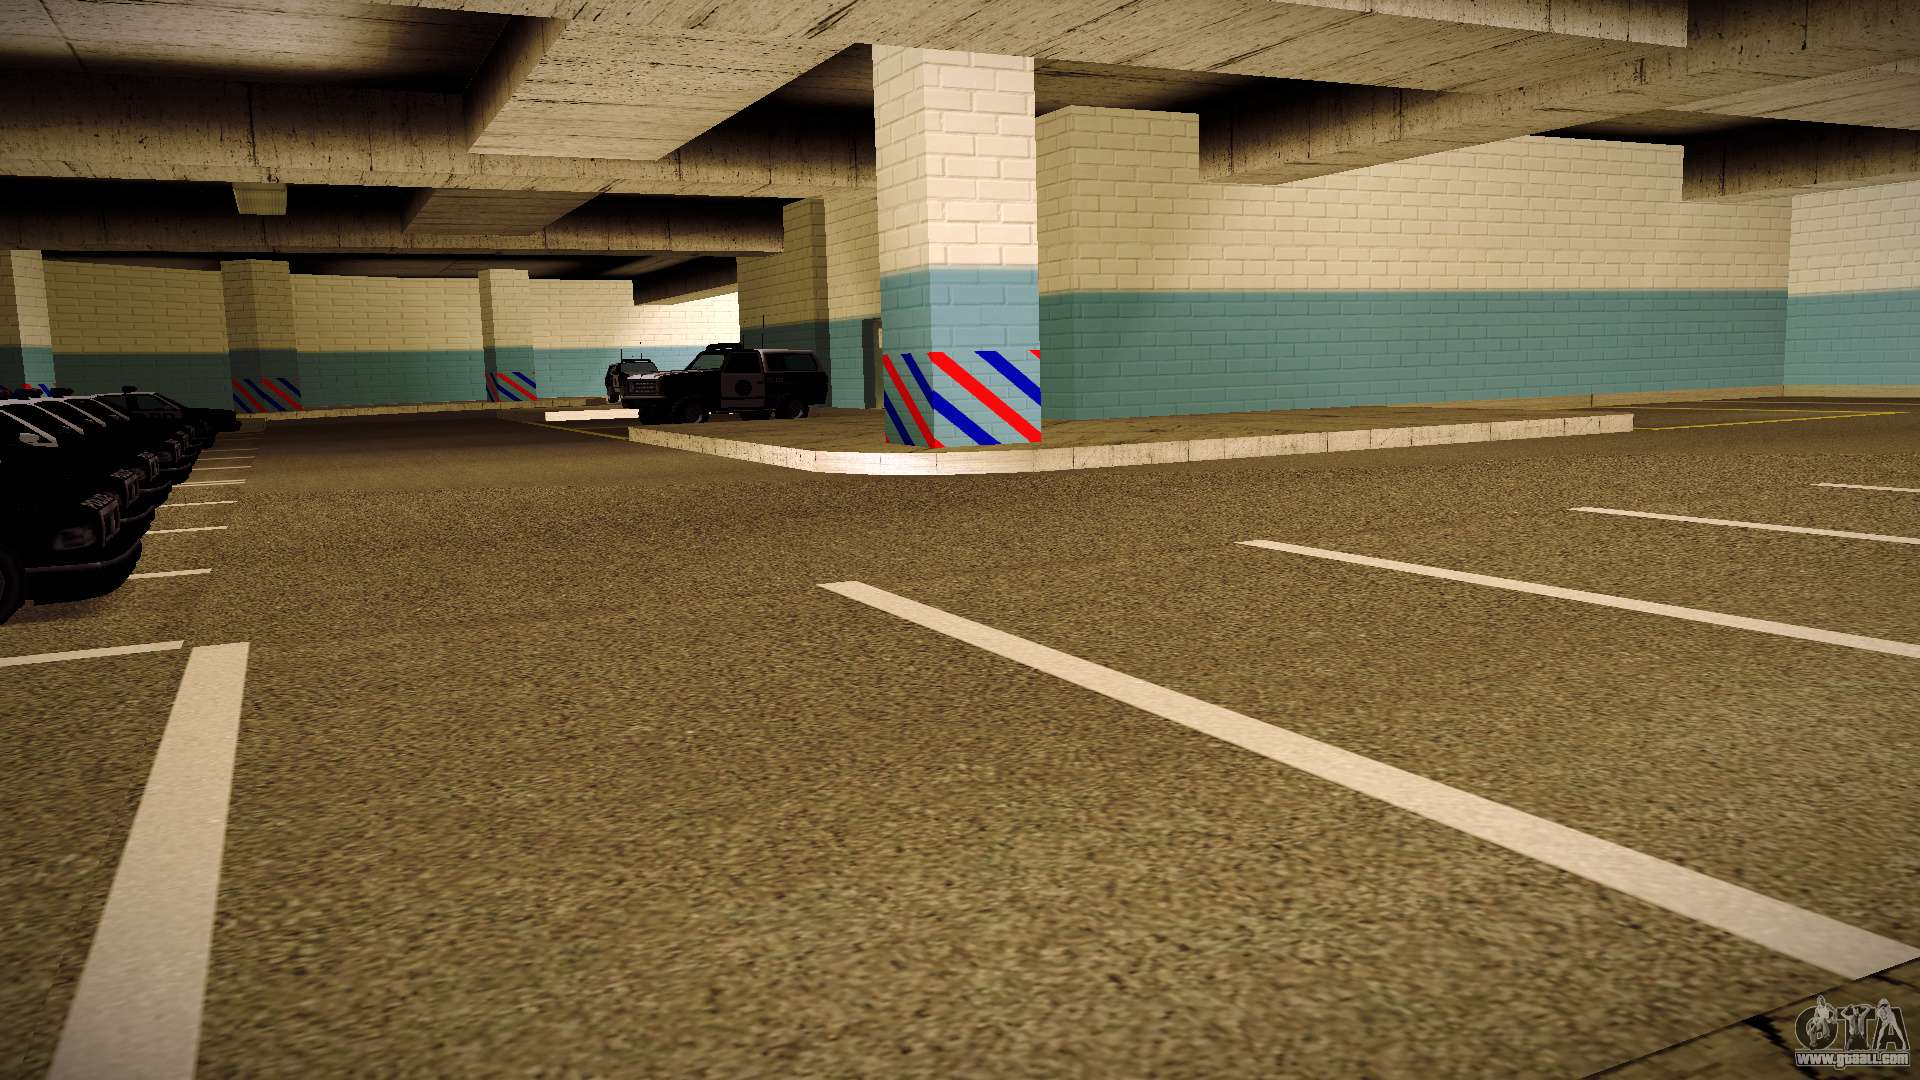 New garage lspd for gta san andreas for New garage